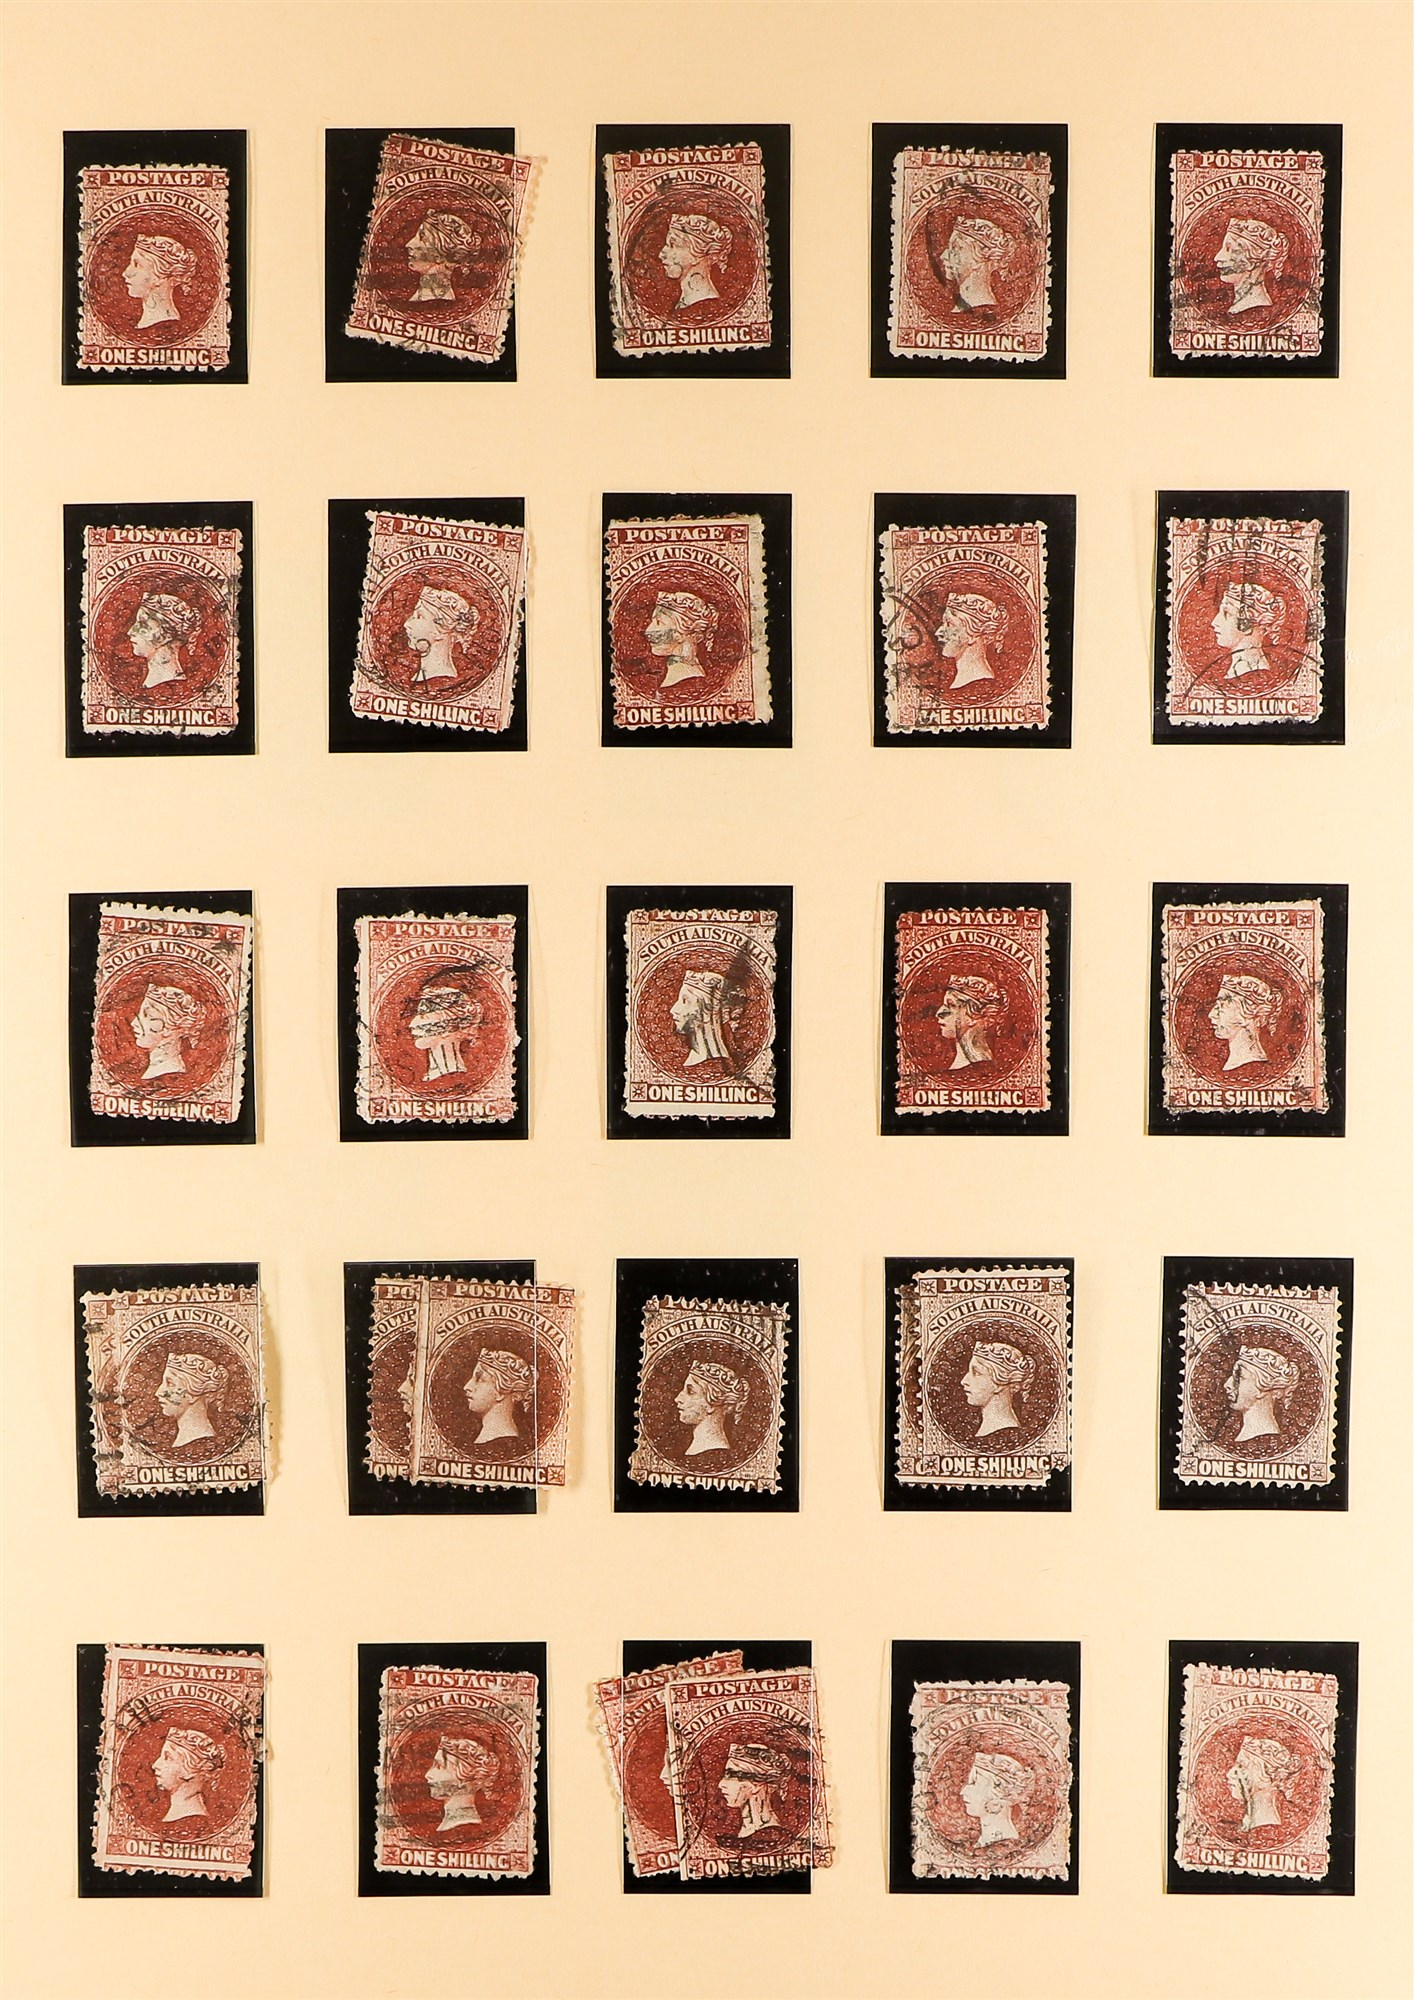 AUSTRALIAN STATES SOUTH AUSTRALIA 1858-1912 mainly used collection incl.1858-9 First Roulettes all - Image 7 of 10